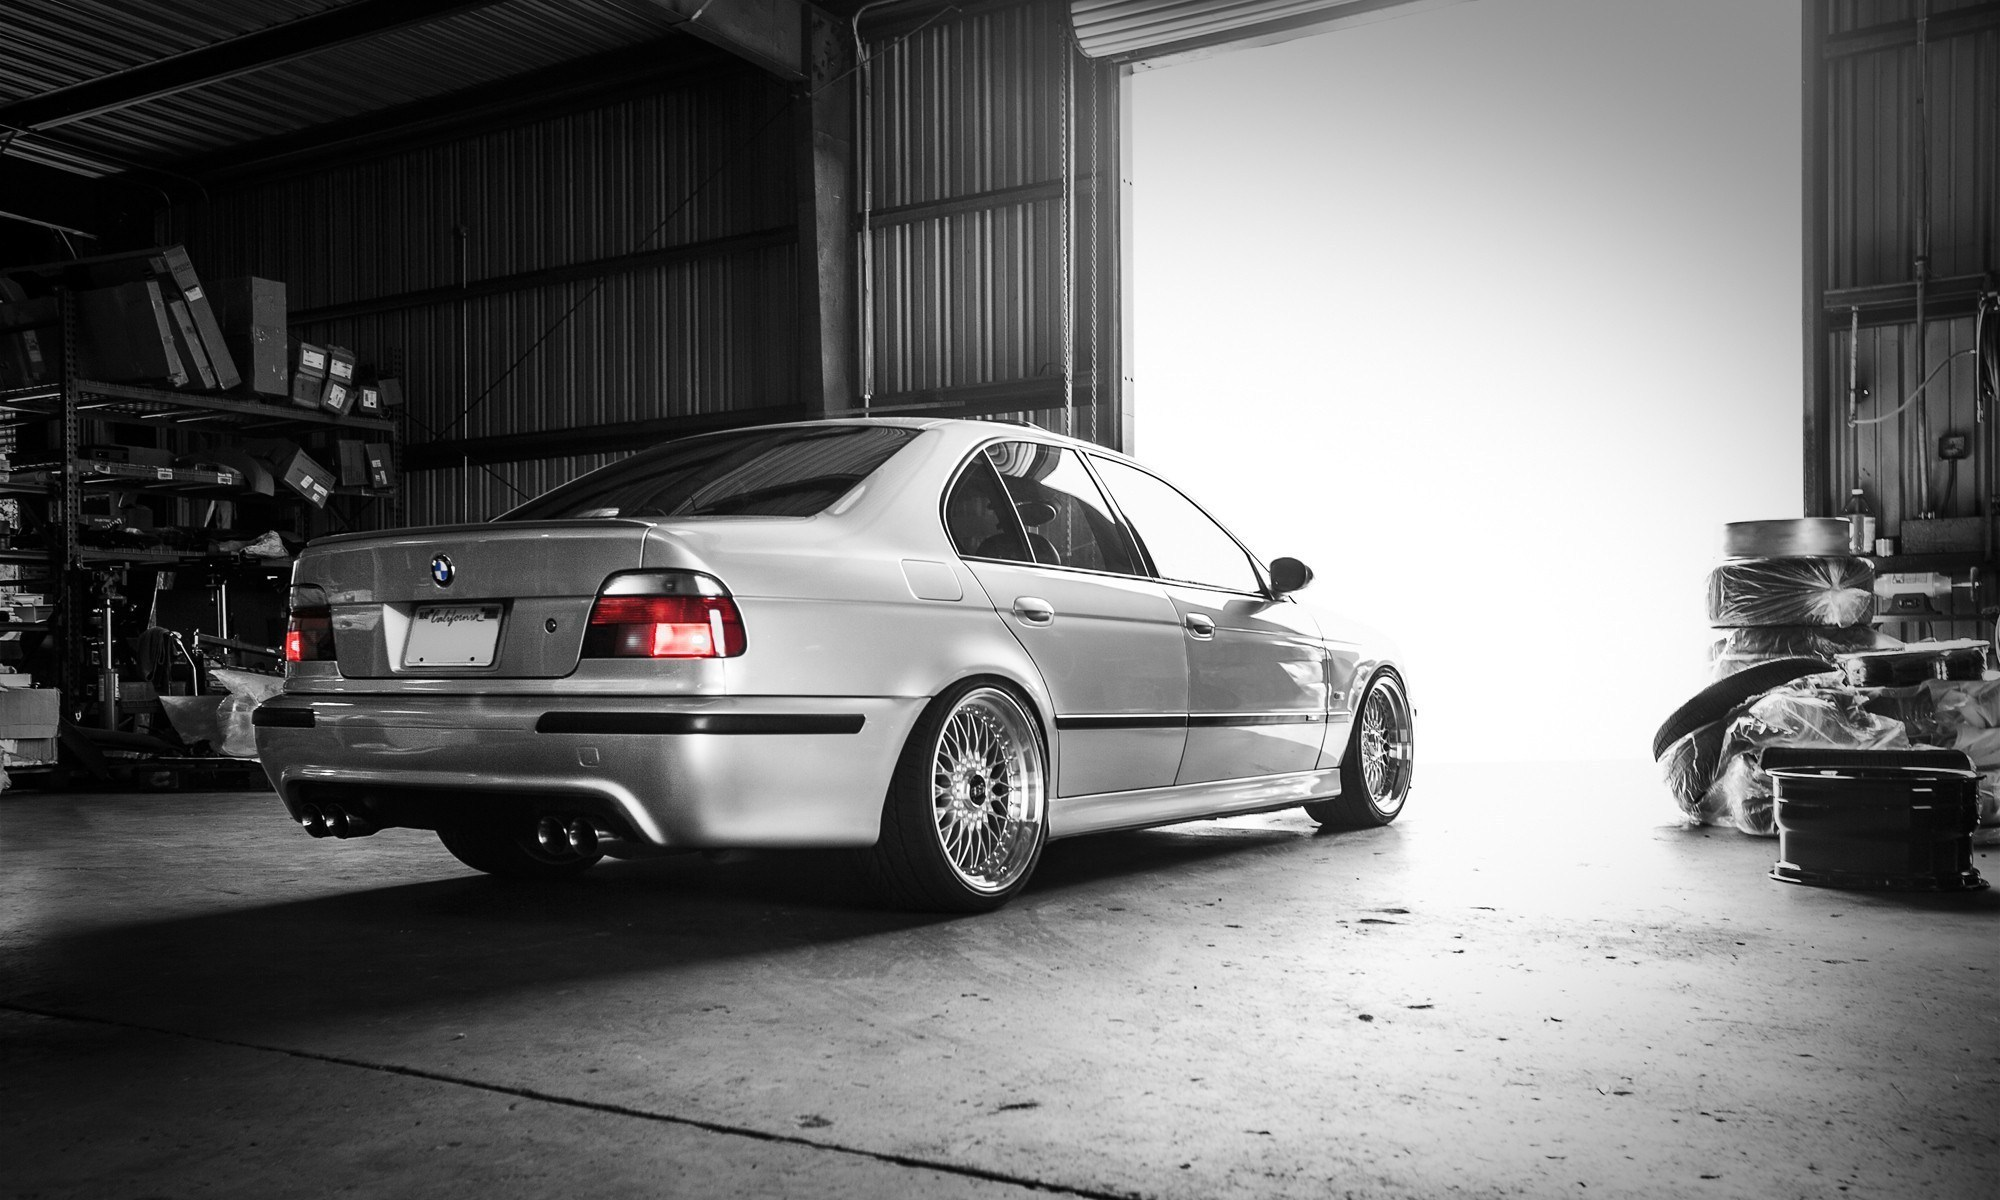 Car Bmw M5 E39 E 39 Garage Wallpapers Hd Desktop Mobile Wallpapers